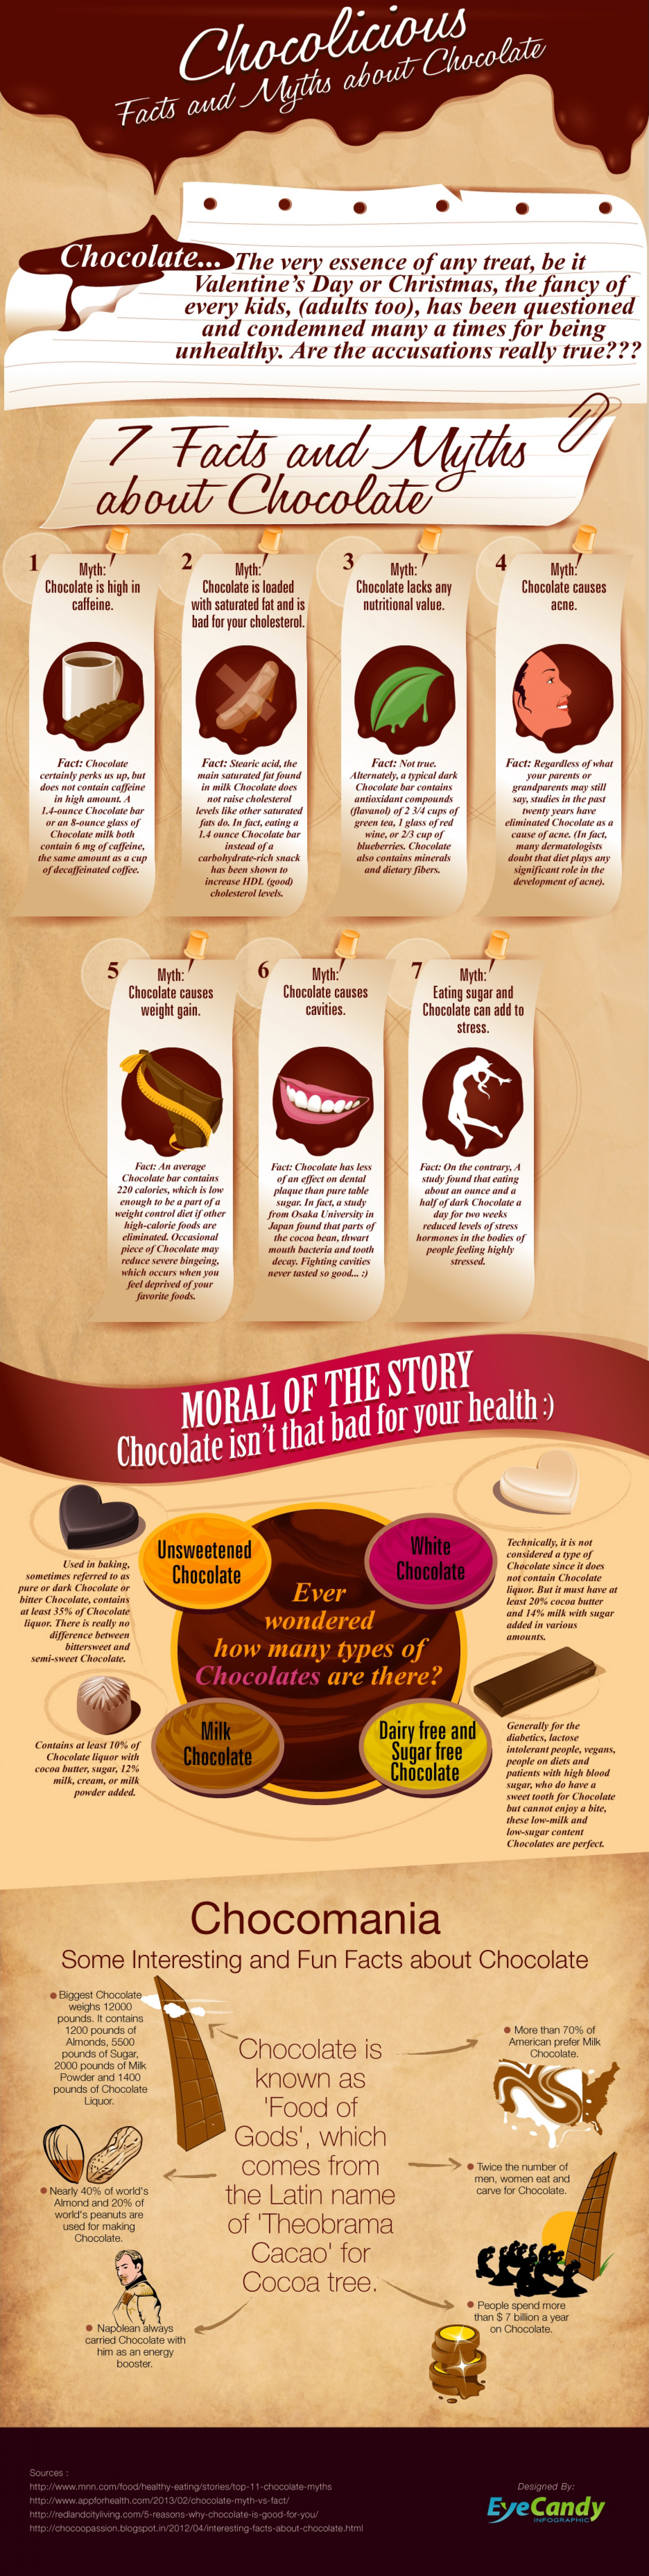 Chocolicious - Facts and Myths about Chocolate Infographic